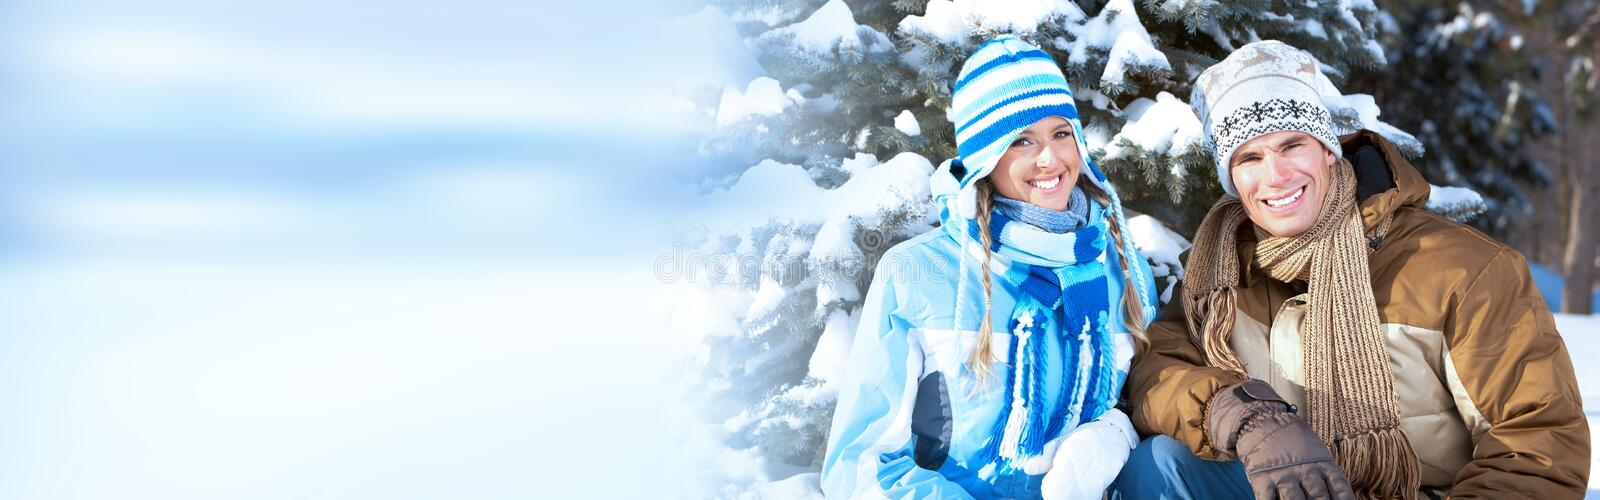 Winter christmas couple. Happy loving couple enjoying in winter park with snow stock photos